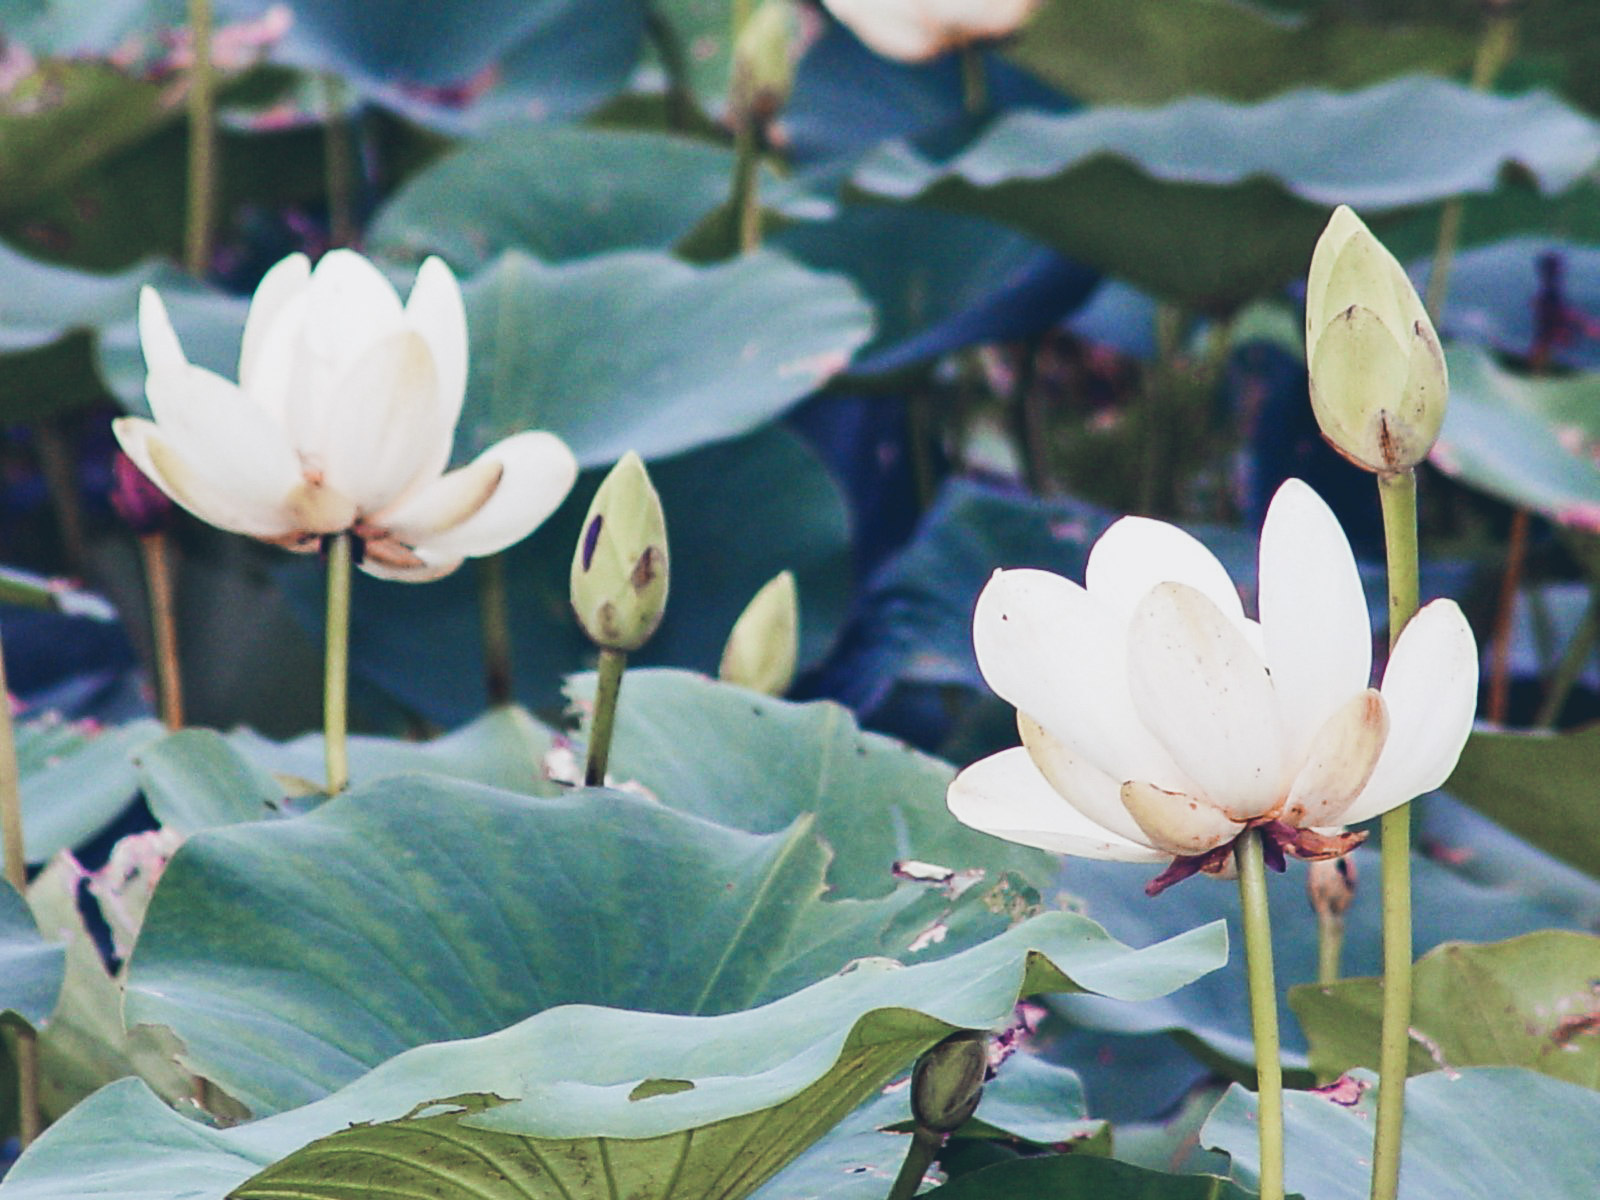 "(A photograph of White Lotus flowers i found on internet. It is not mine.)  When I was young, I used to dislike my name because a lot of people didn't pronounce it properly. I've been called many names : "" Fanja"", ""Fania"", ""Fanta"", ""Fenja"", ""Fenza"", and even ""Fonzie"" . haha  Would you believe me if I told you that even the French Administration typed "" Fanta "" instead of "" Fanja "" on my ID Card...?!   Most of my Teachers would put a "" Z "" instead of a "" J "", instead of trying to Remember it.     It's not the End of the world! you would say... But i suffered in silence for many years. I even sometimes felt ashamed to spell my own name... How Crazy is that?!  So, what made me and my "" Ego "" to Counter Attack? Well, I guess their Ignorance, but I also admit, mine too. I used to Ignore and Deny the existance of the Negative Thoughts that kept me all this Time  Prisonner of my Negativity . Now I know these Things don't matter. I already forgave them, and first of all, I forgave Myself. That is what liberated me.  My name is  Fanja  (pronounced "" Fanza "" or "" Fanz "").  In Malagasy language (in Madagascar),  it means  ""Bud"".  In French, we say "" Bourgeon "" and in Japanese "" Tsubomi "".  I believe this name is the One I have chosen and is the One that chose me.  It reminds me, at this Period of my Life, that I'm in the phase of Remembering Who I truly Am, my Deep Connection with Nature and our Universe and the Mission I have to accomplish on Planet Earth to help Bring back Love, Peace and Harmony, before I bloom and transform into a Flower.    Be proud of your Name, no matter what People say or How they could distort it.  Your name is Sacred .  It is the Energy of Love and Creation Manifesting itself, that No One and Nothing can Destroy.    Search for its Real and Deep meaning. It certainly hydes Secrets and Magic.  Above all, You would be surprised to Discover how Connected you actually were with it Way before your were born.  If really you Feel that your Name has never fit you or doesn't fit you anymore,  you can search for another One, listening your Intuition...     To Every Fanja in the World and Every Little Buds who are also about to Bloom: Let the Light guide your Heart, your Mind and your Spirit to the Awakening of your Truth.      in the name of ""i aM presence"".   Peace. 🙏🏾💚🌿   Fanja"